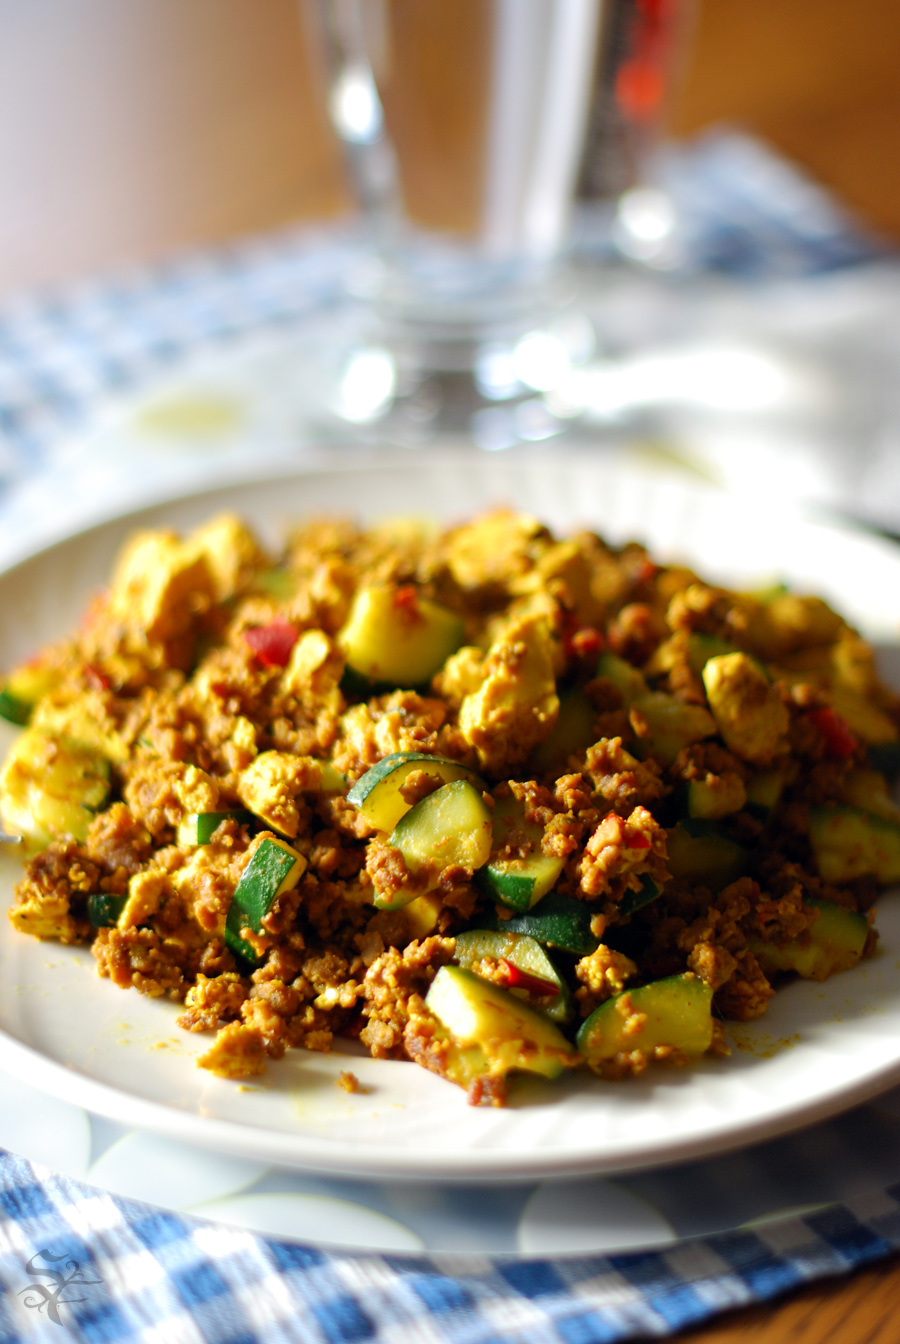 Vegan on the Go: Recipe: Hummus Zucchini Tofu Scramble